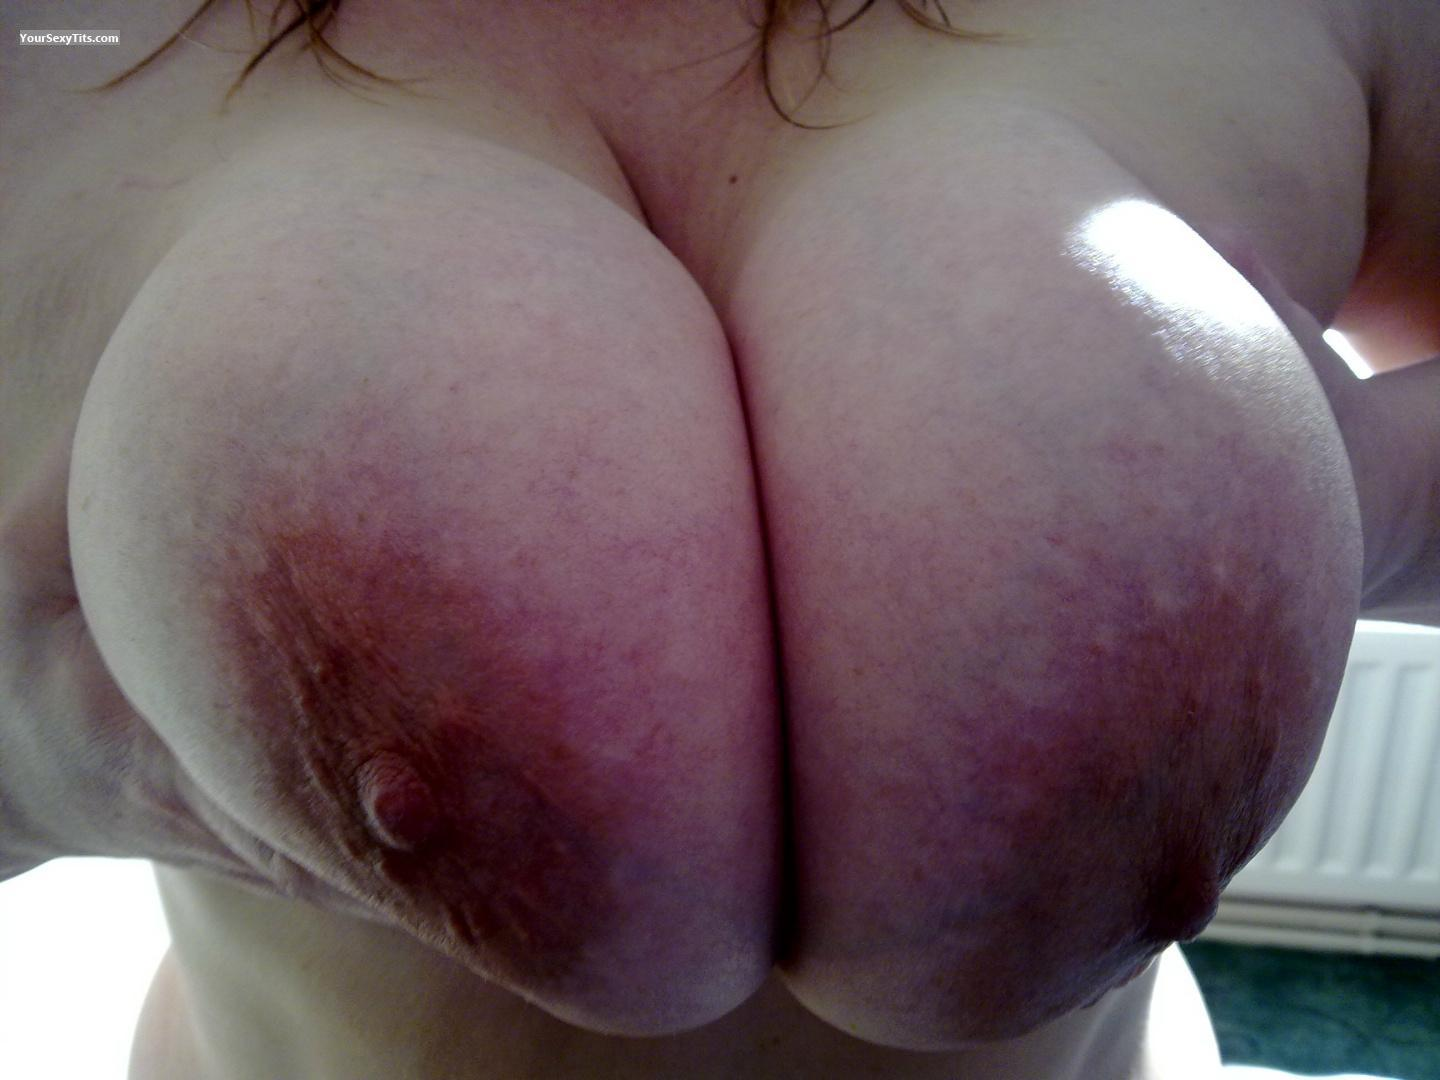 Tit Flash: Very Big Tits - Bigboobs42e from United Kingdom